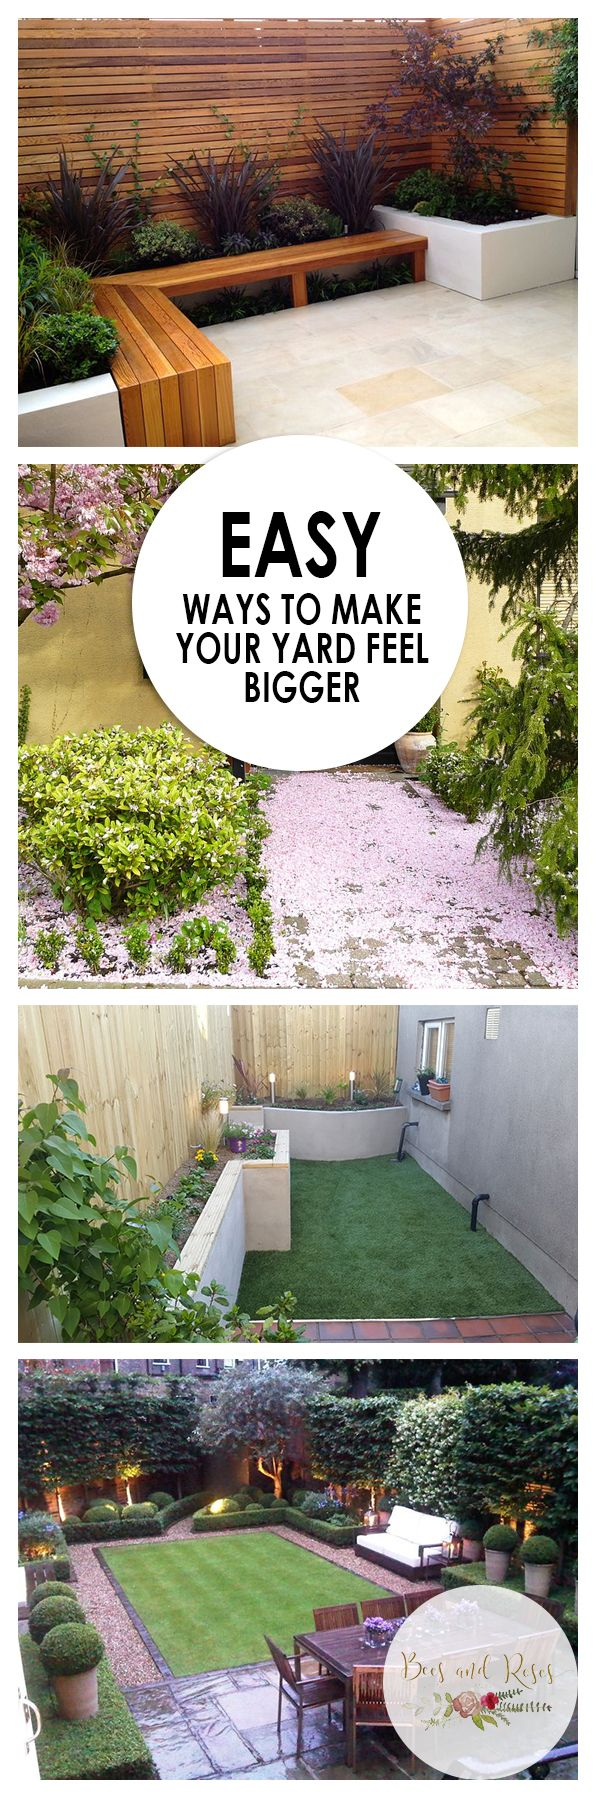 easy yard space ideas to make your yard feel bigger landscaping